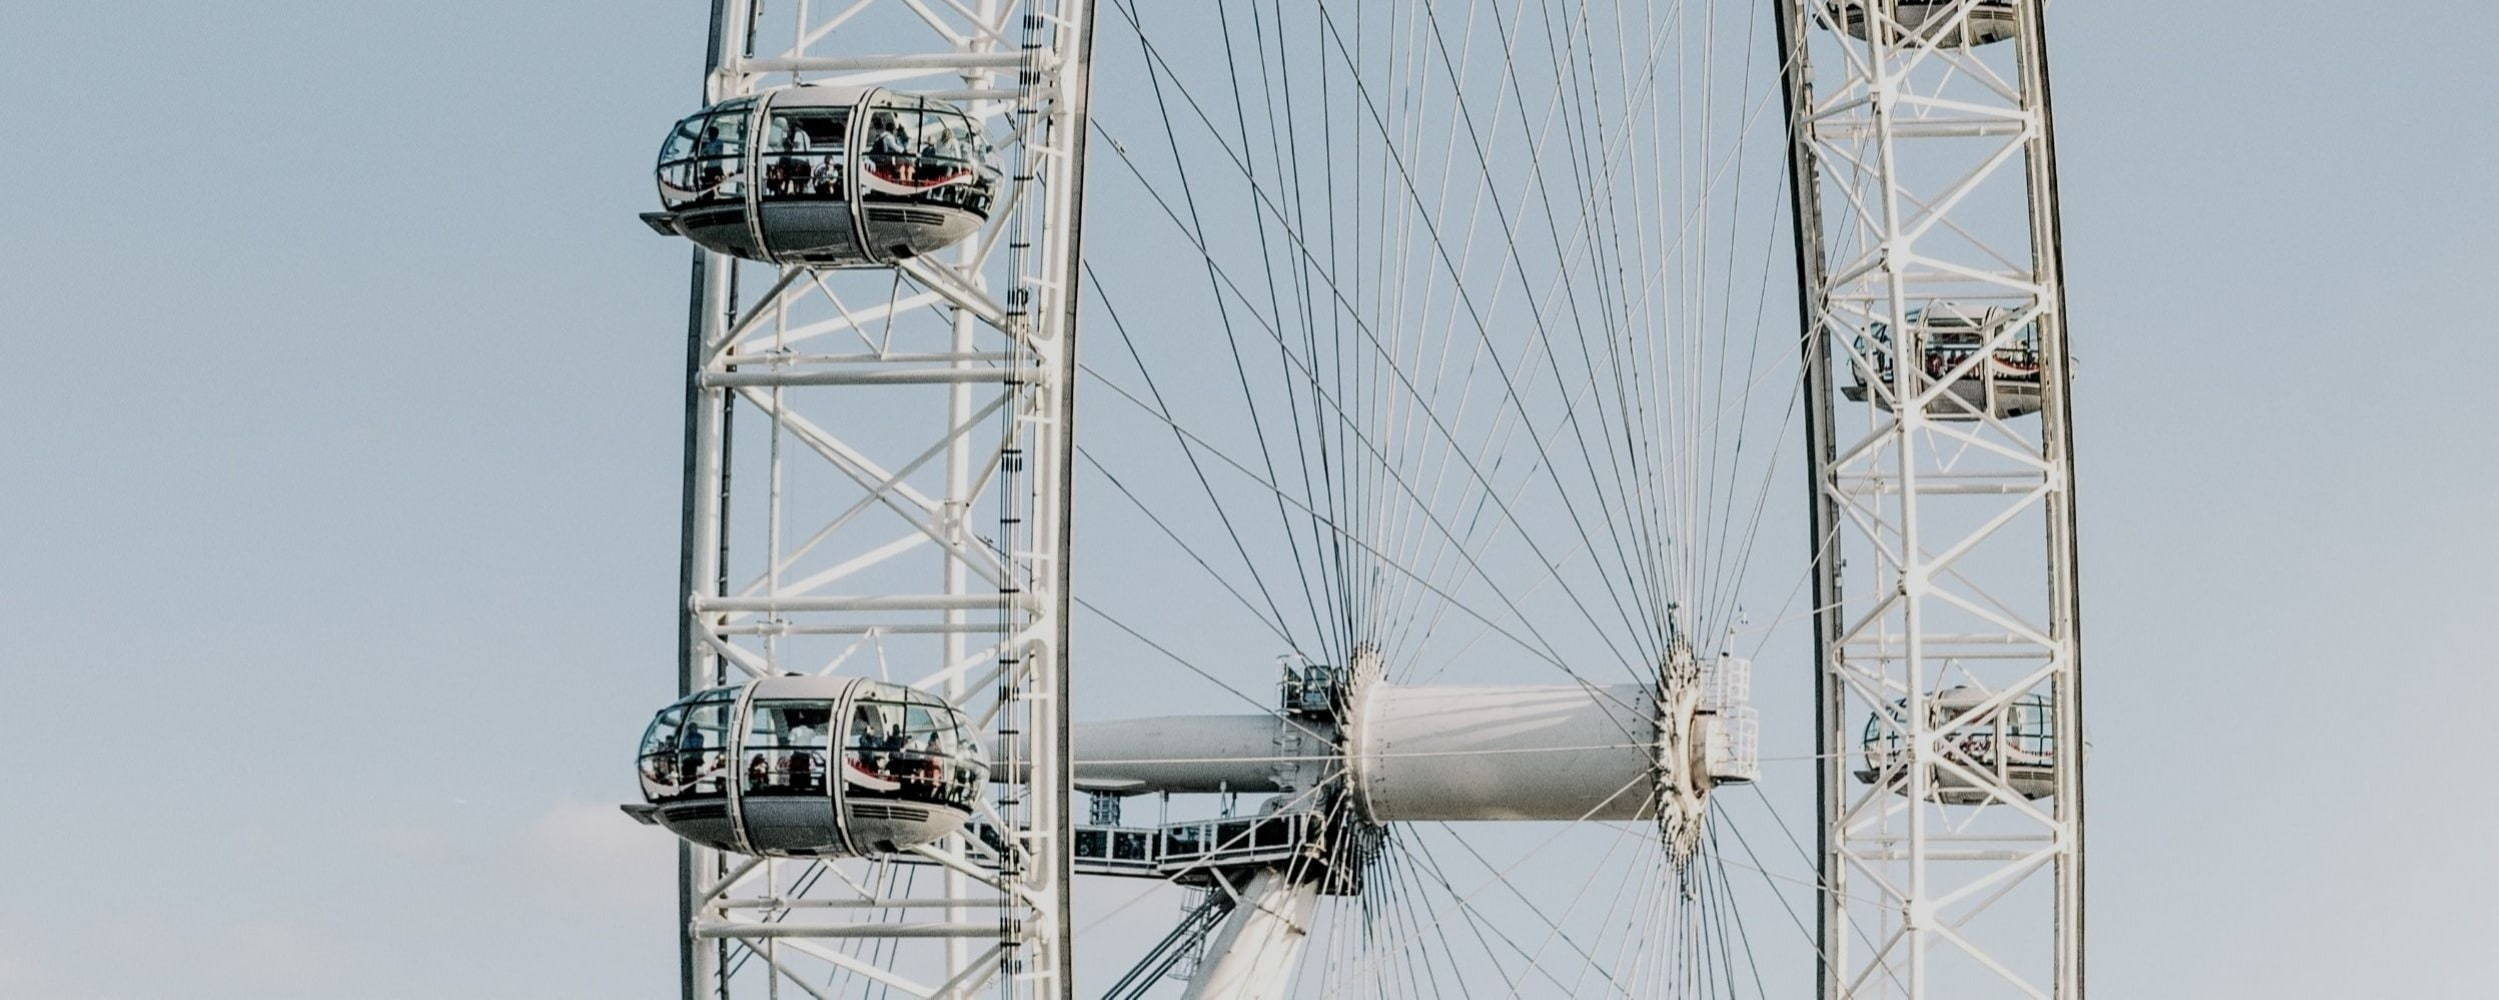 Close-up image of London Eye